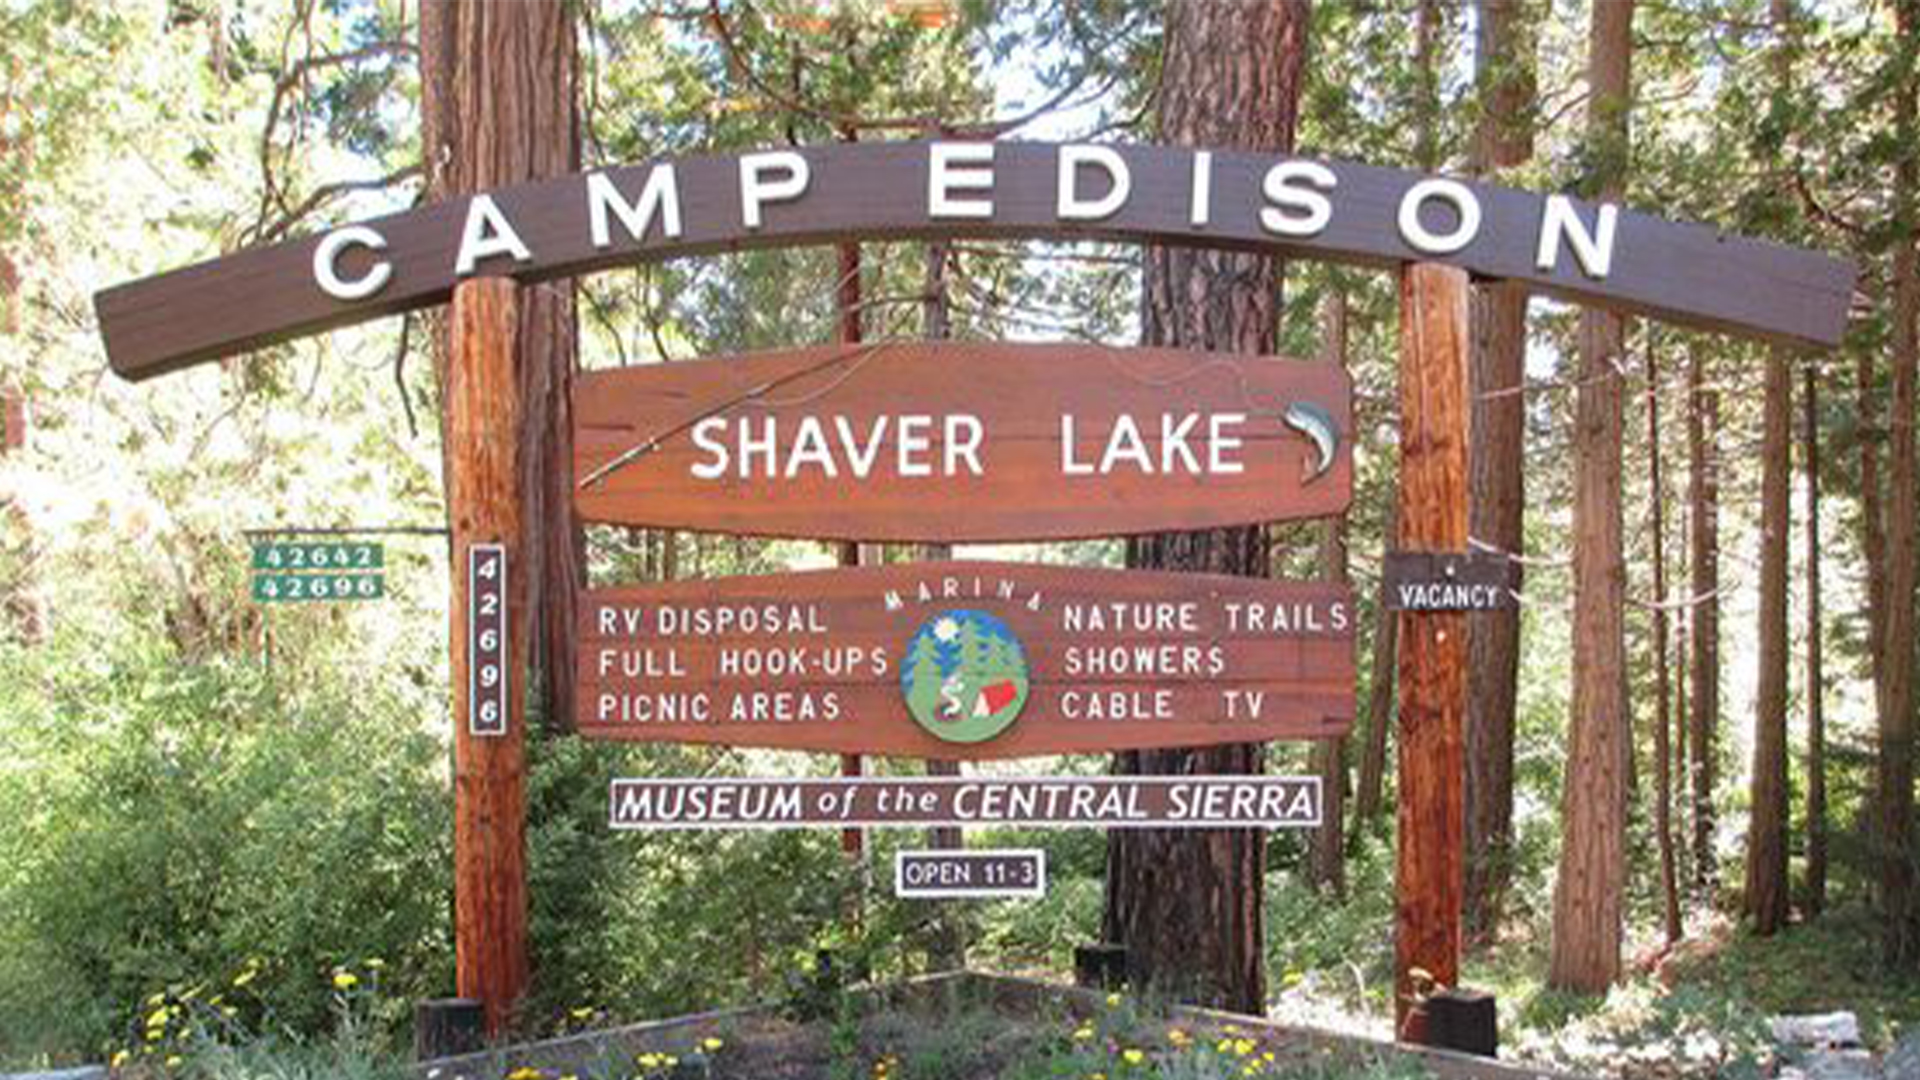 Camp Edison At Shaver Lake To Reopen July 1 For Limited Camping Yourcentralvalley Com